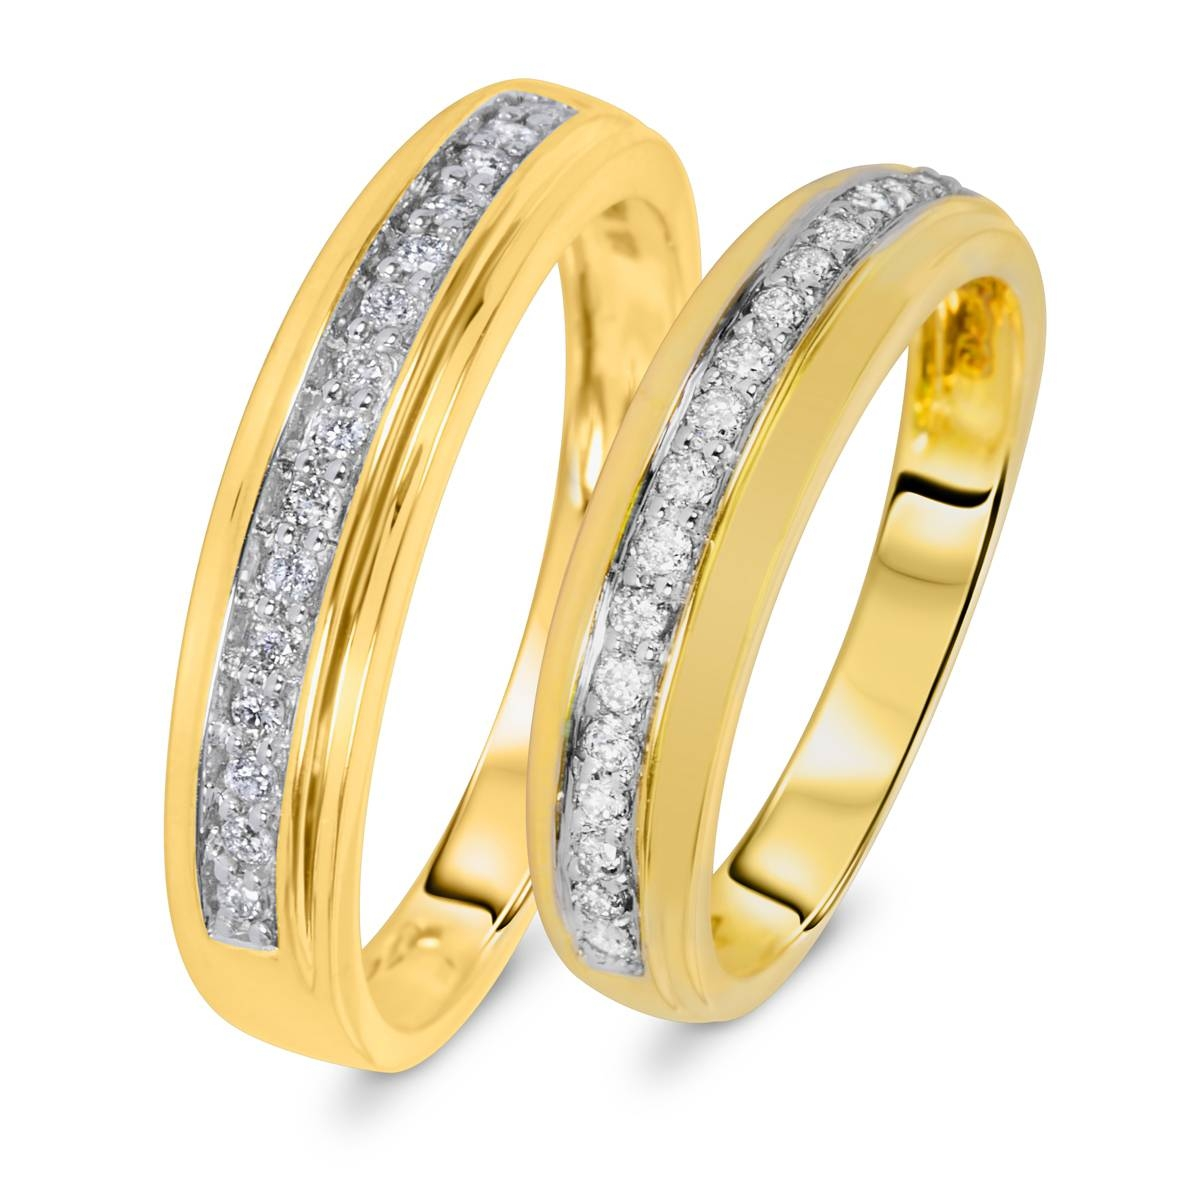 1/3 Carat T.w. Diamond Matching Wedding Rings Set 10K Yellow Gold For Most Up To Date Yellow Gold Wedding Band Sets (Gallery 7 of 15)